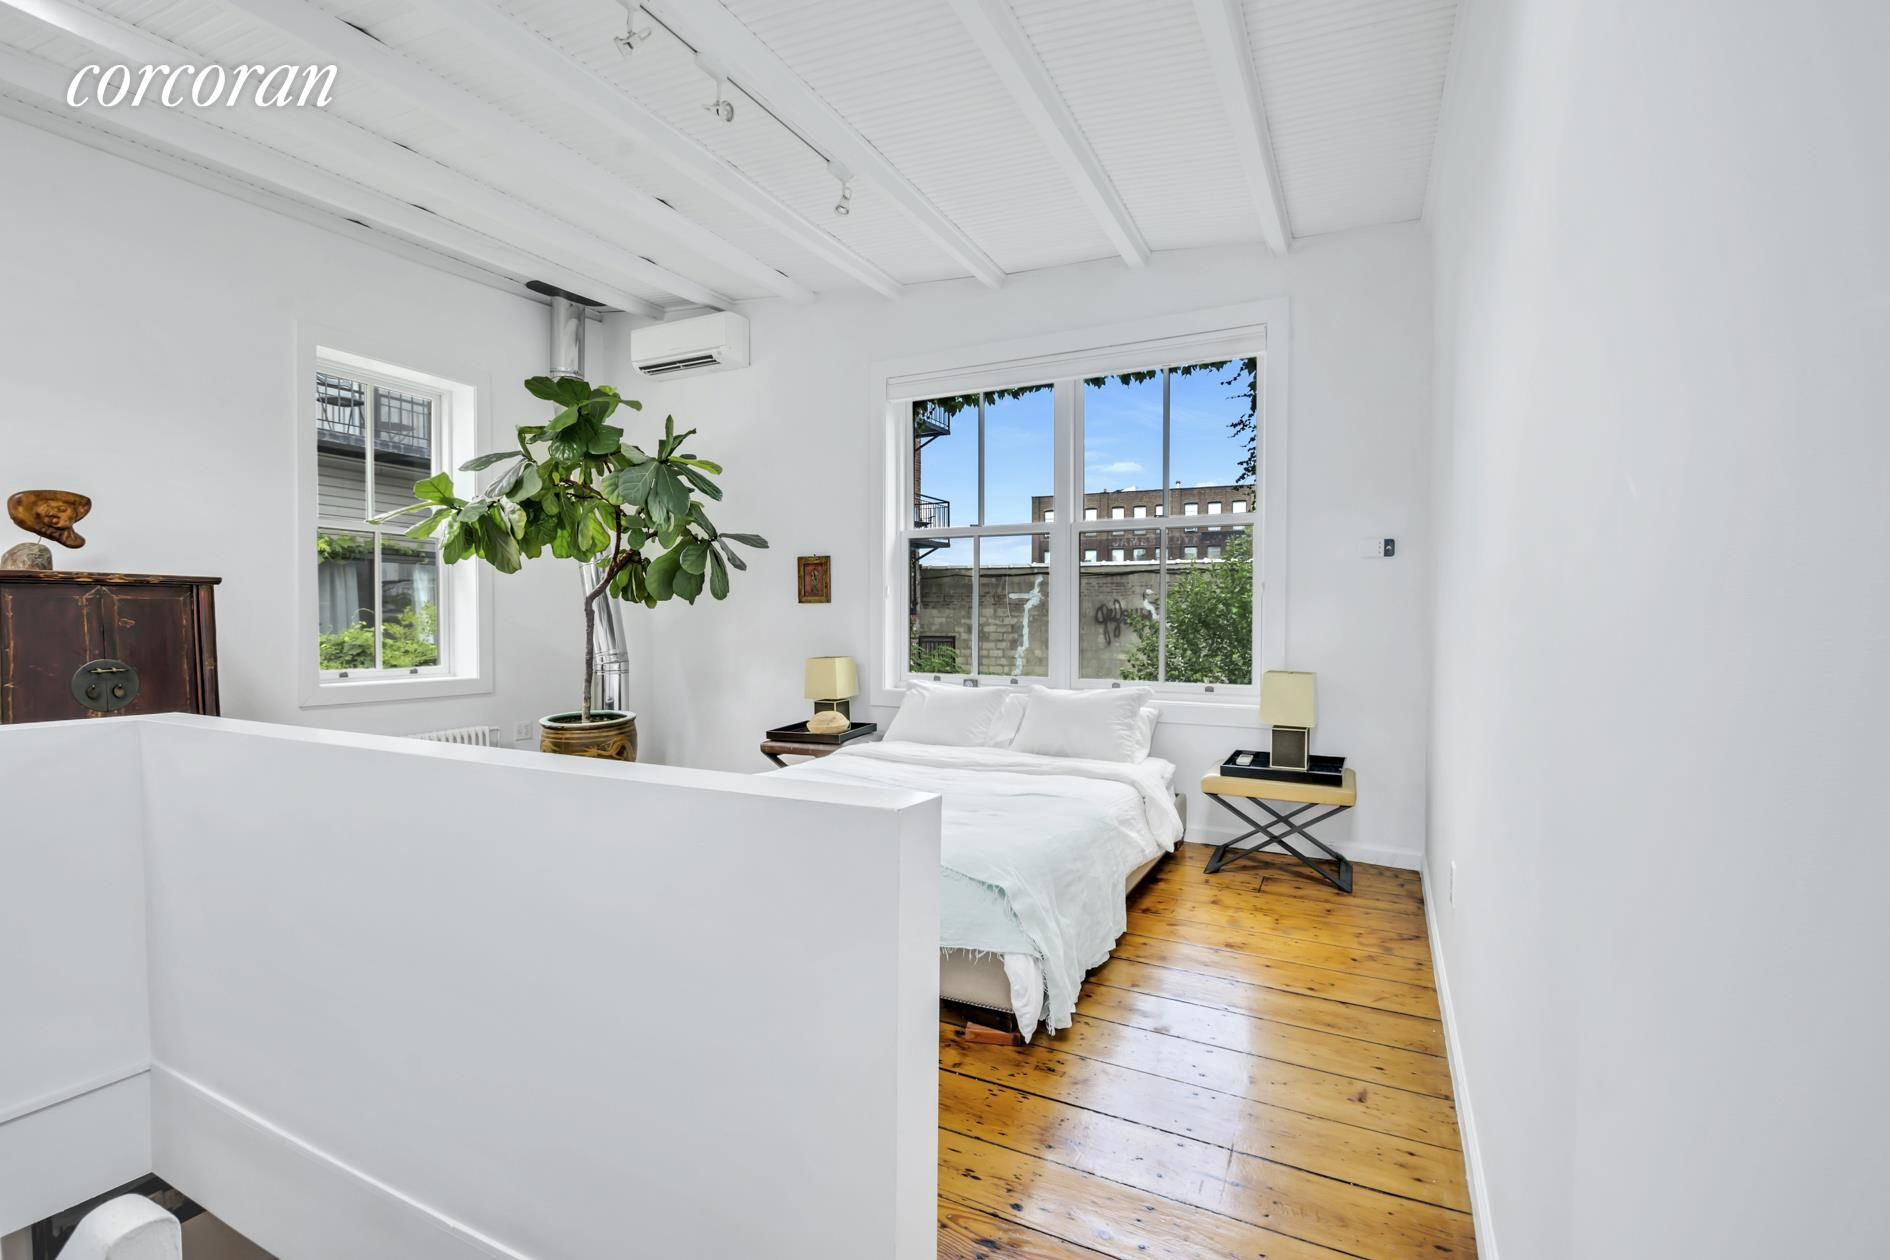 561 Union St Photo 8 - NYC-Real-Estate-668587